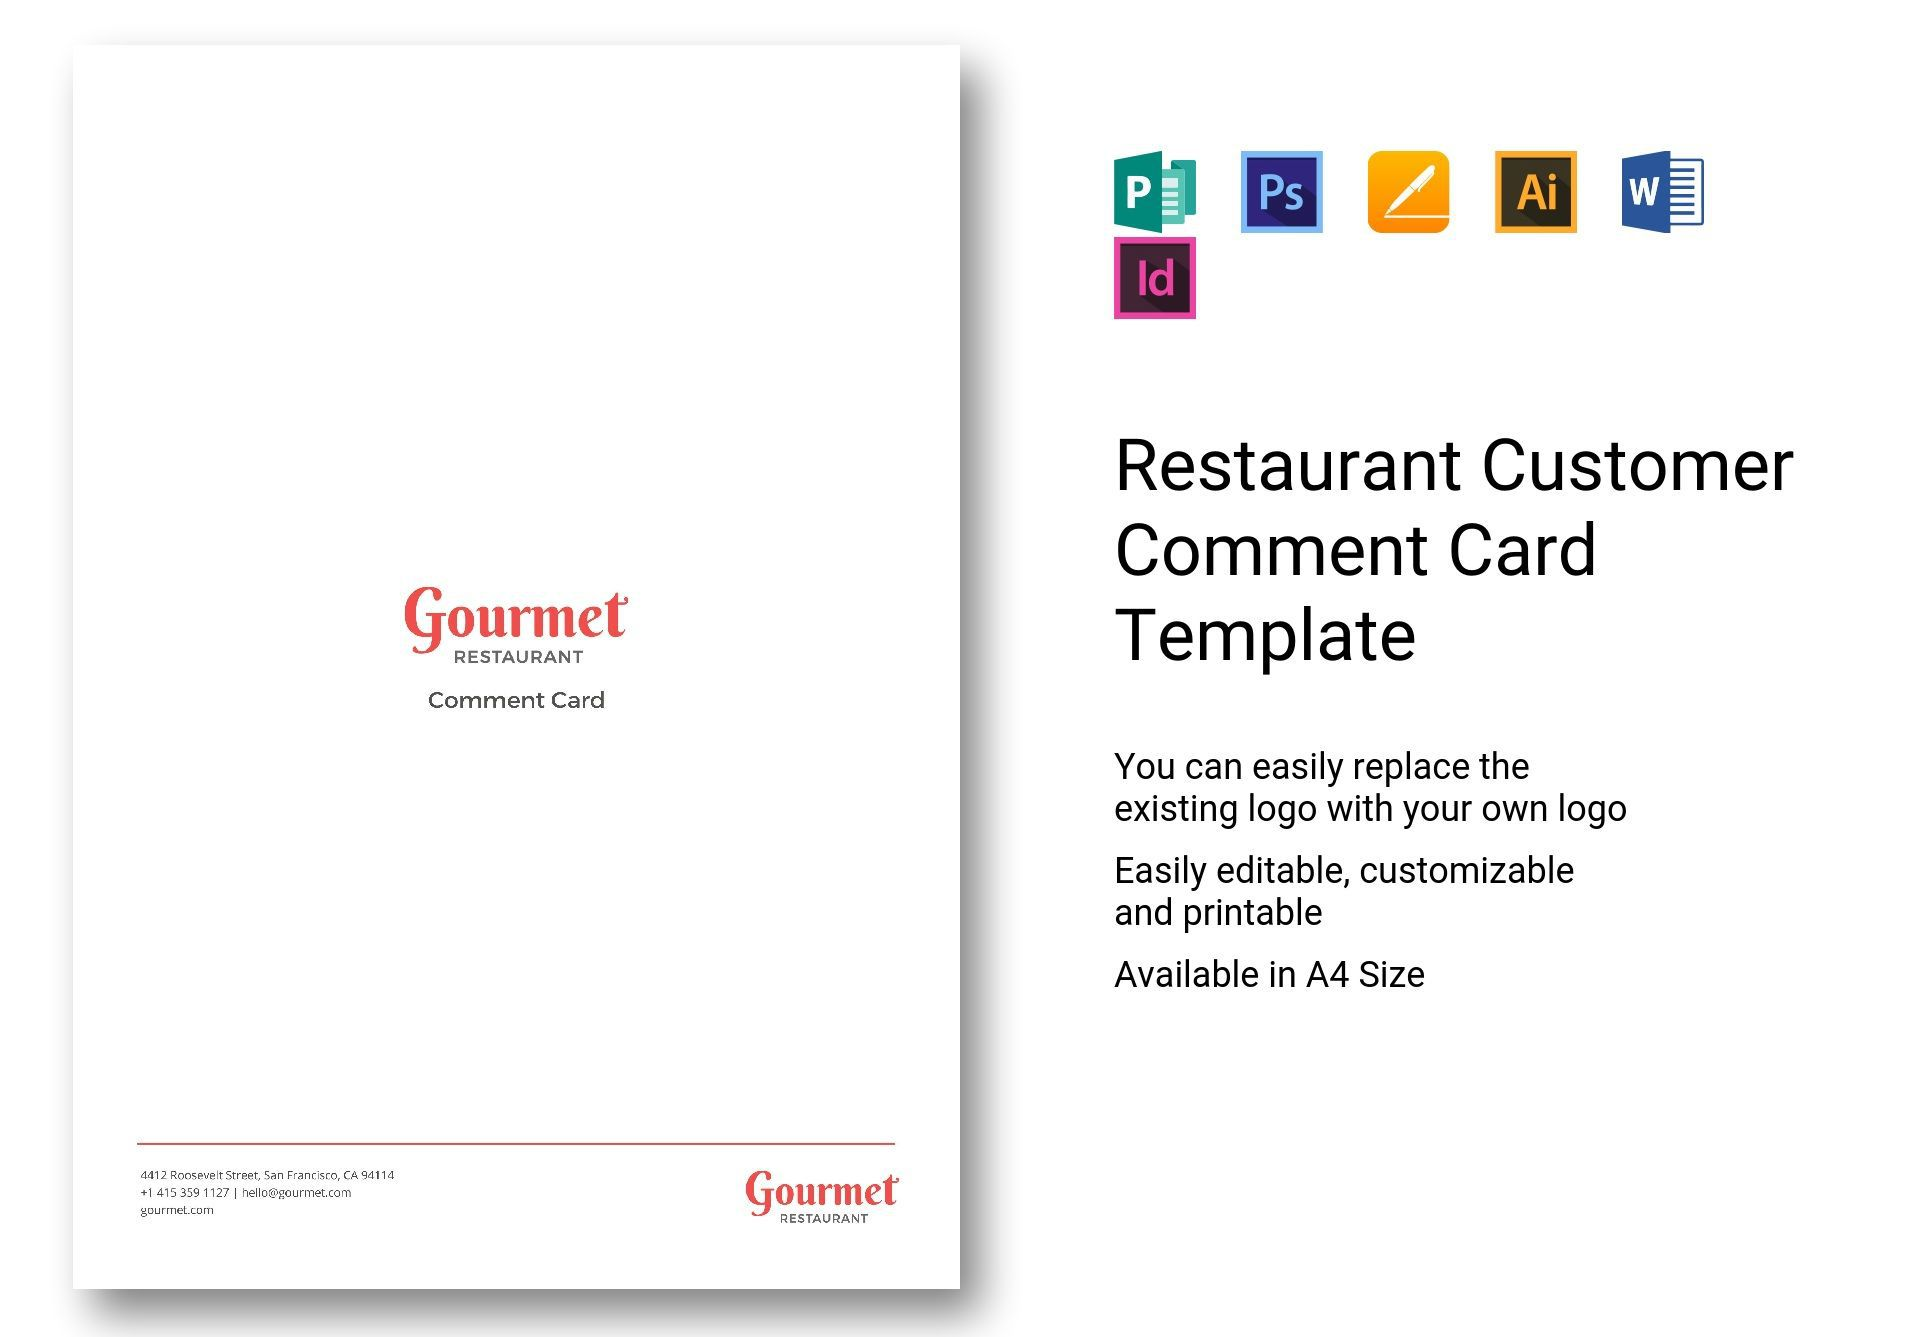 002 Unusual Restaurant Comment Card Template For Word Image Full